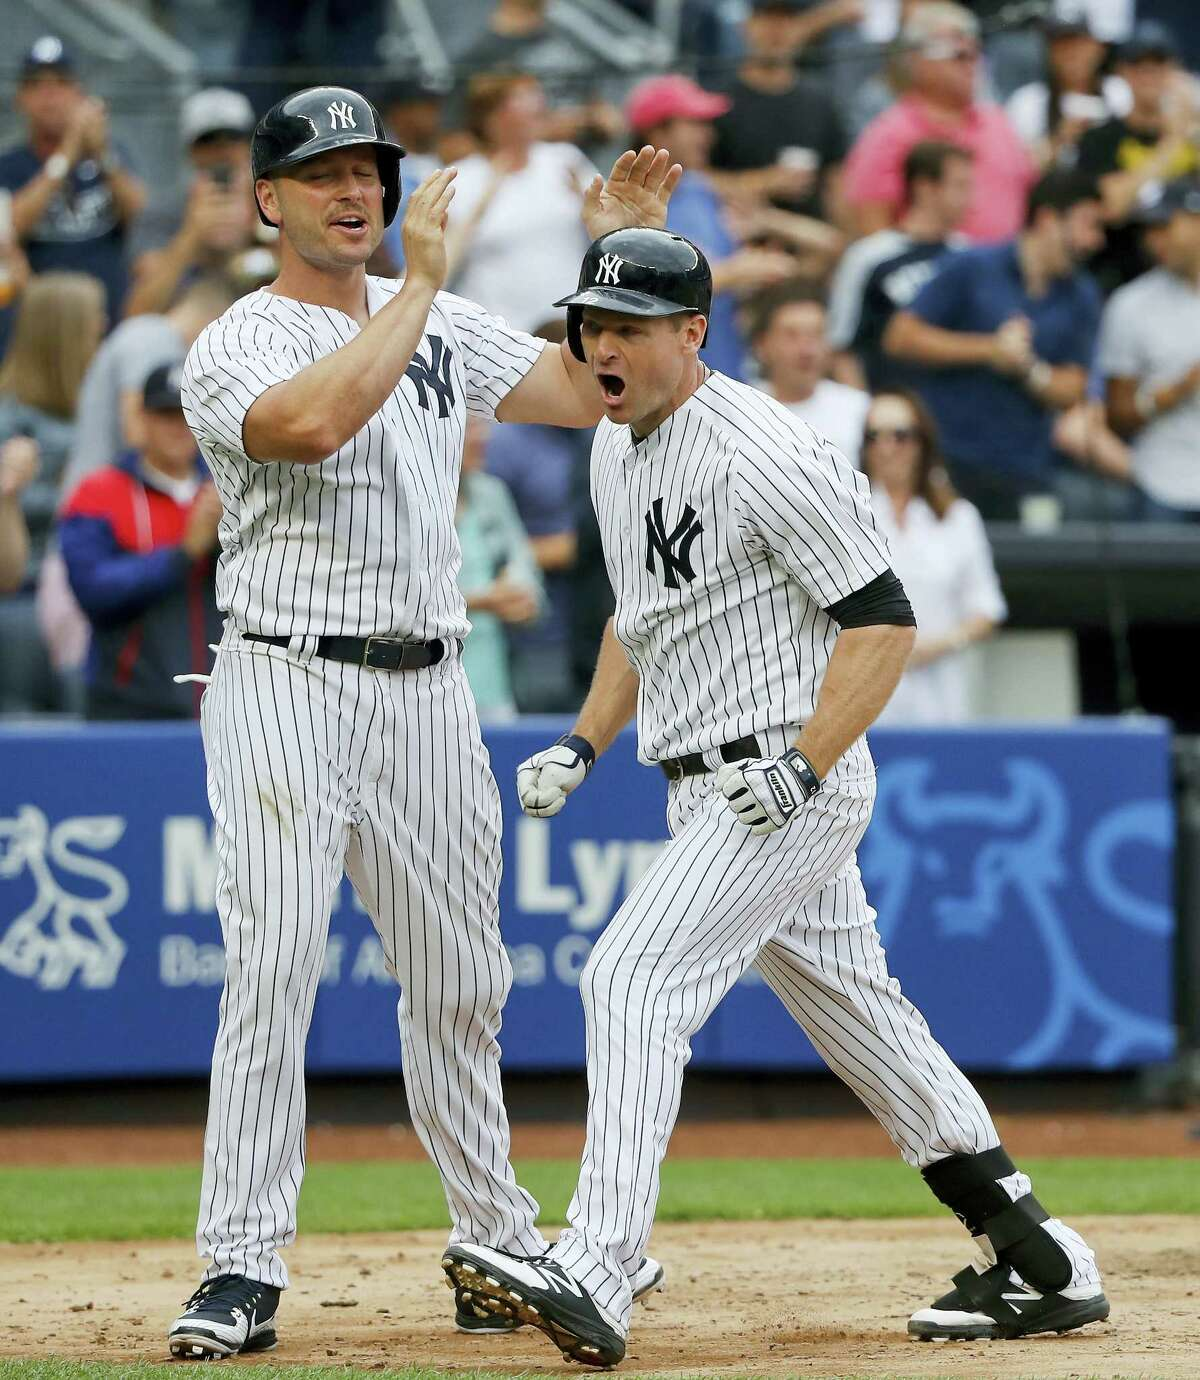 The Yankees' Chase Headley, right, celebrates with Matt Holliday after hitting a two-run home run in the sixth inning.